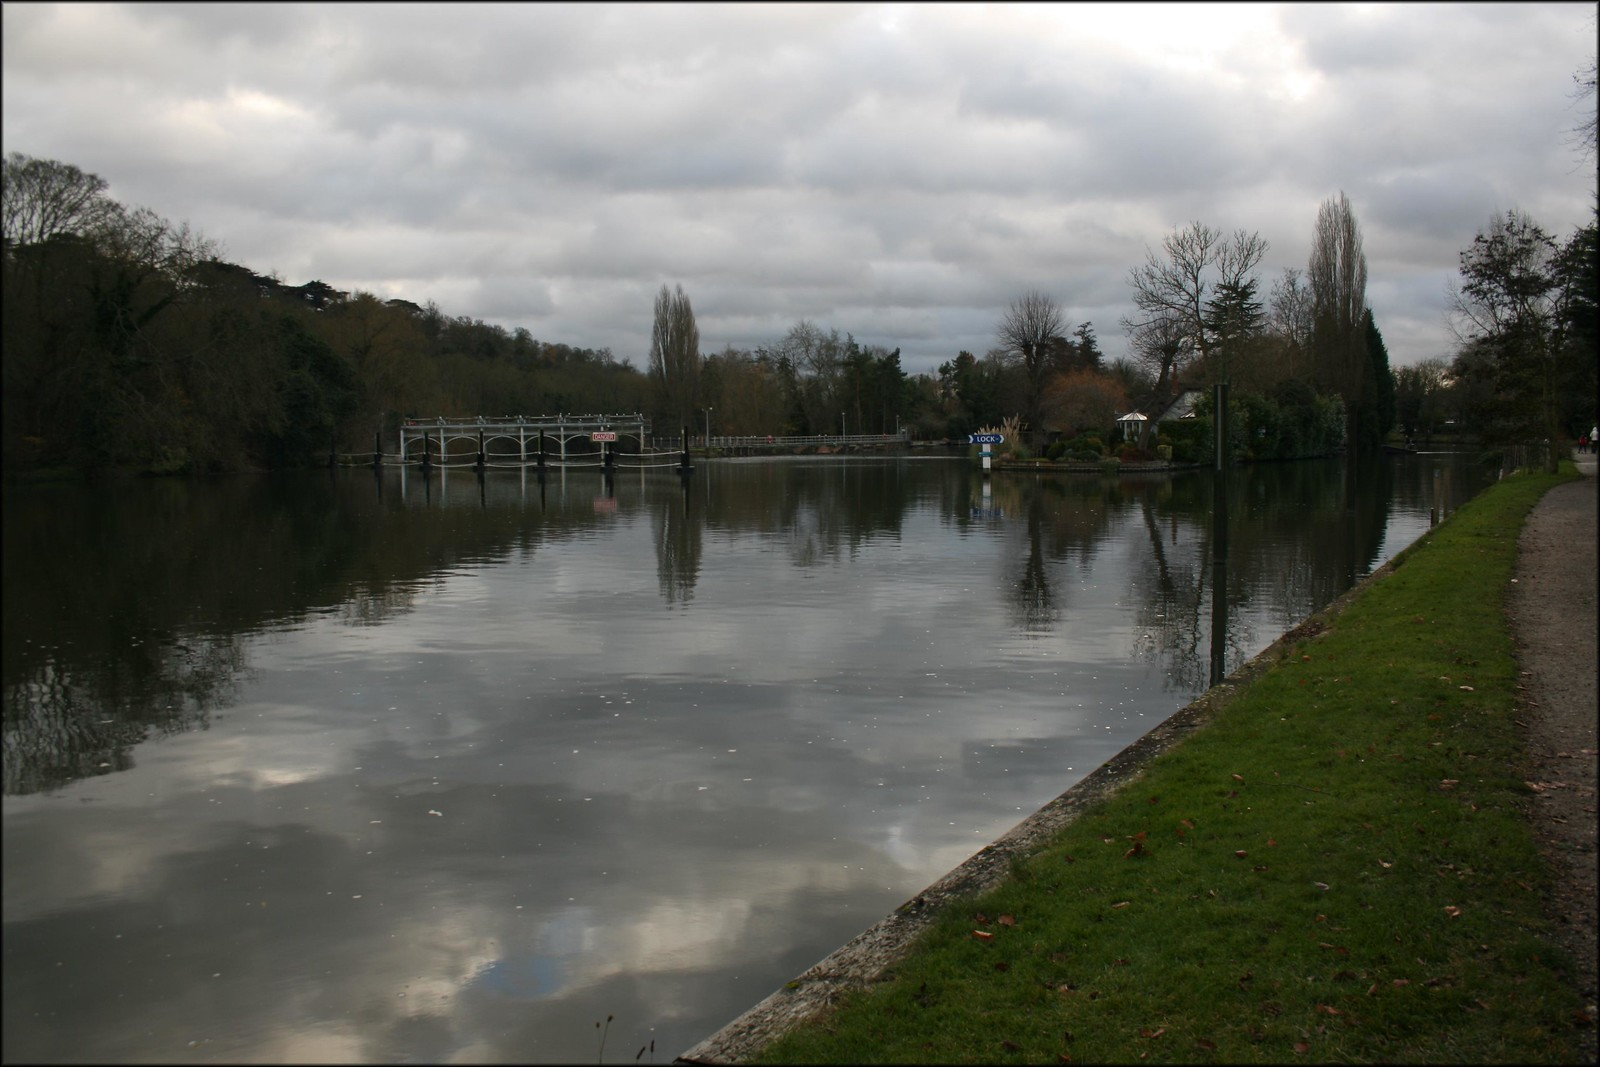 The Thames at Maidenhead